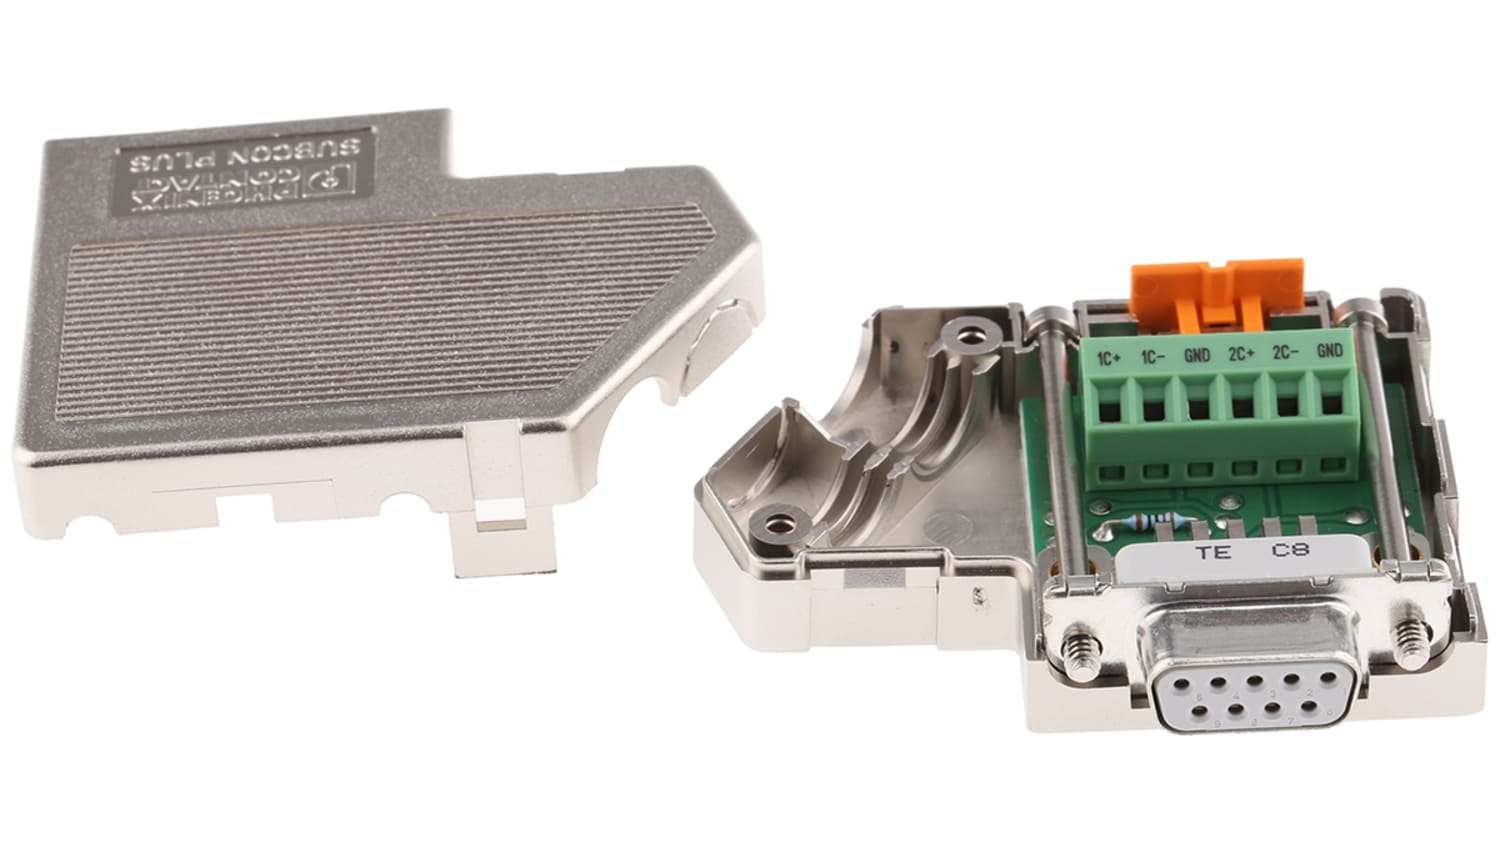 Details about  /*NEW* PHOENIX CONTACT SUBCON-PLUS-CAN CONNECTOR 2744694